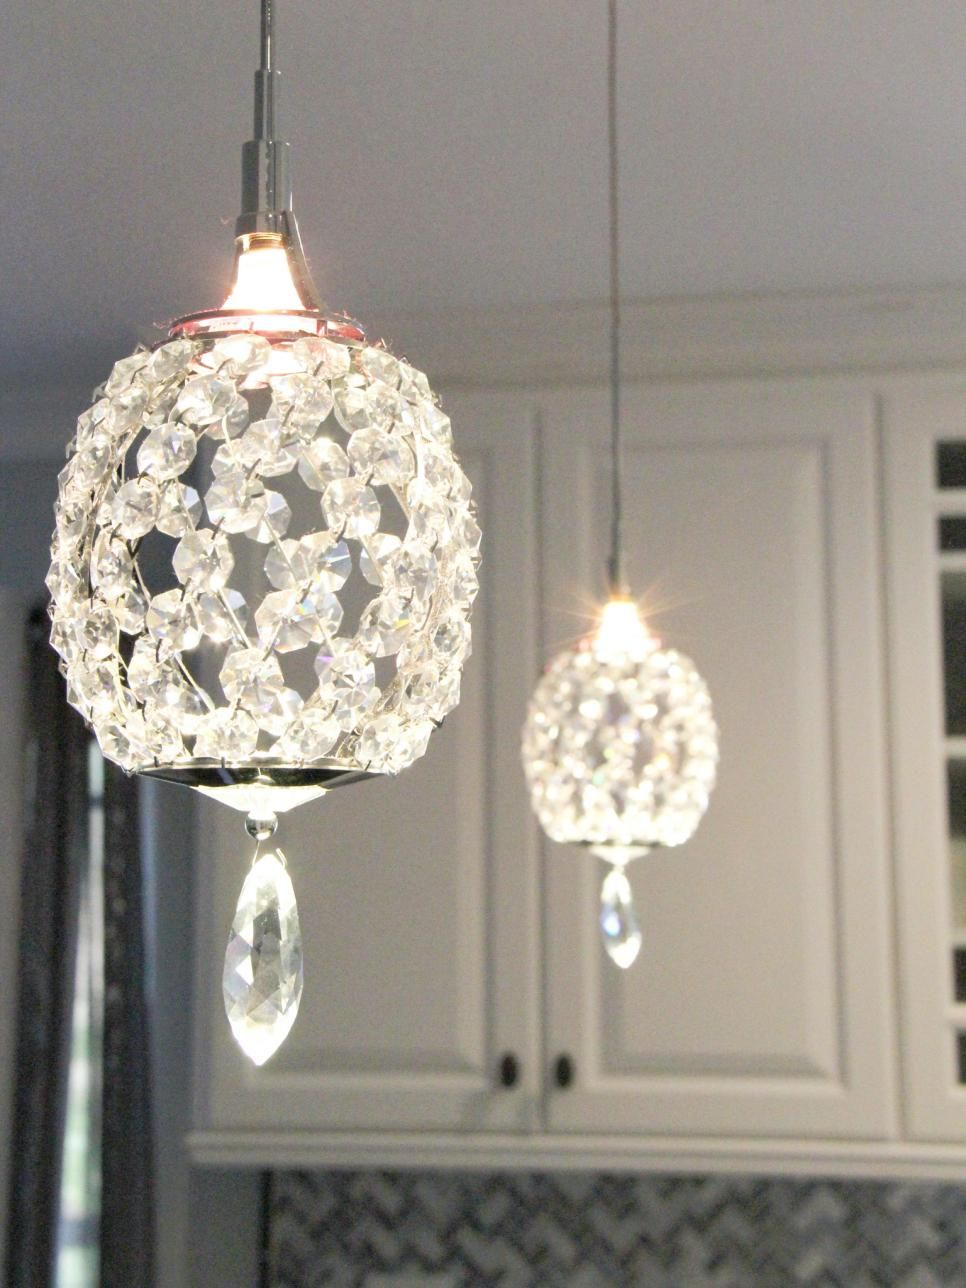 Crystal pendant lights over a peninsula bring a touch of glam to ...